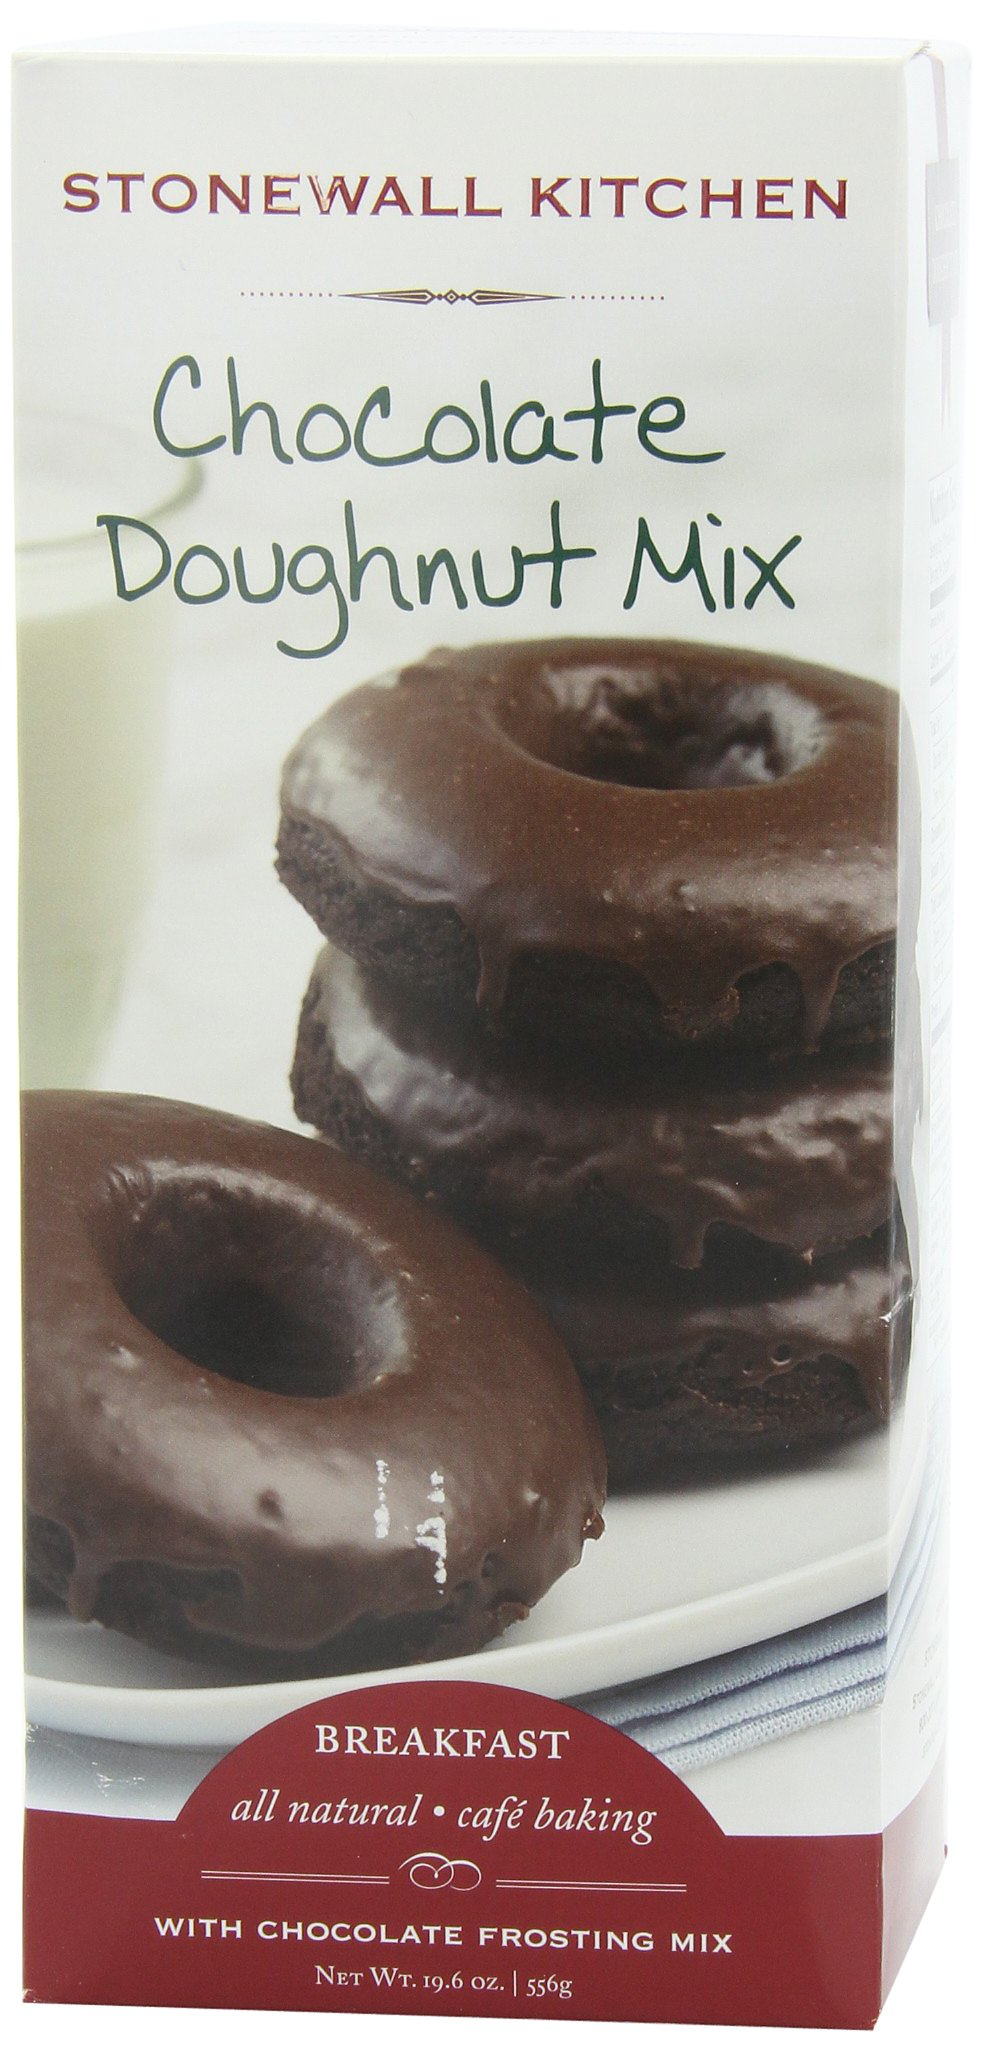 Stonewall Kitchen Chocolate Doughnut with Chocolate Frosting Mix, 19.6-Ounce (Pack of 2)